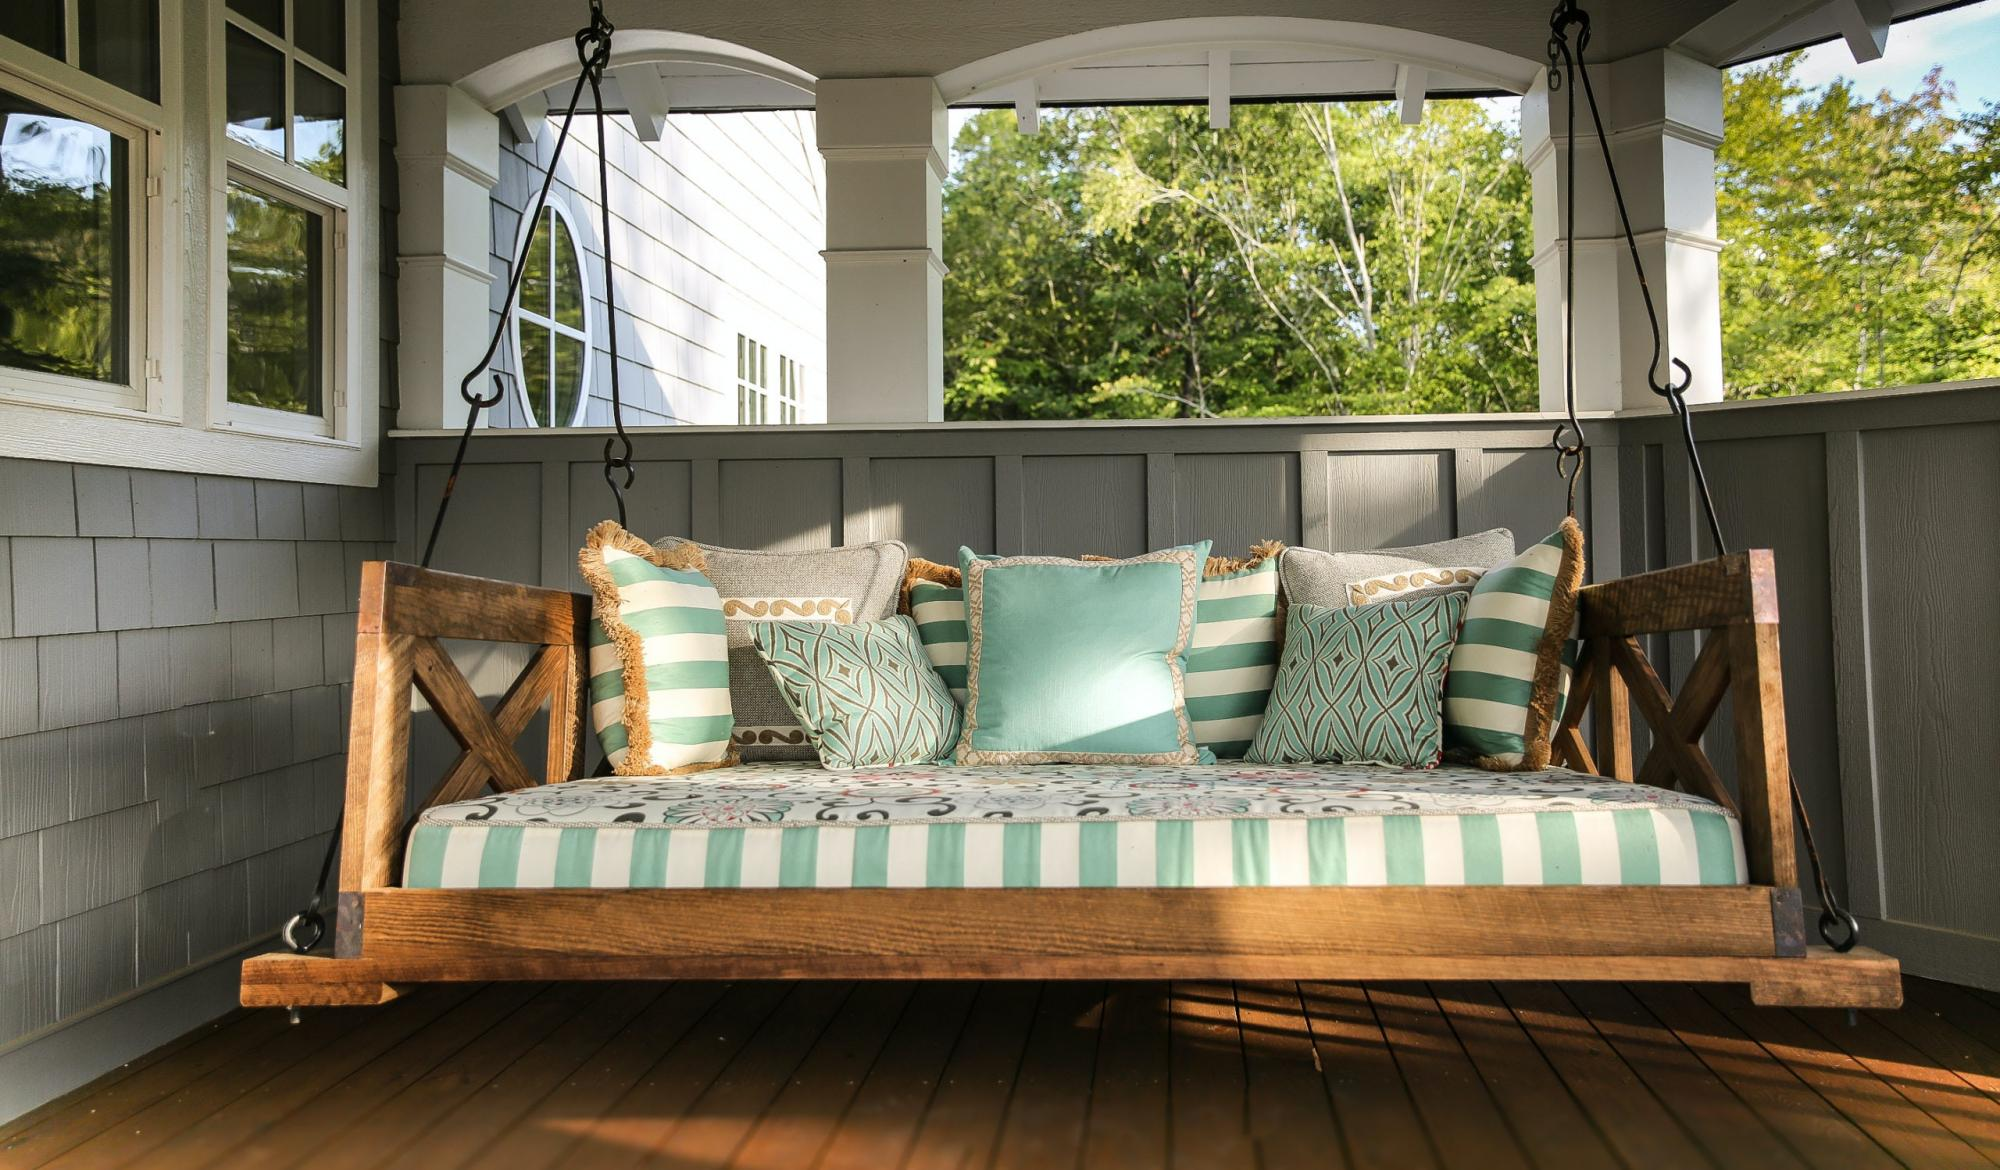 Front porch swing with pillows.